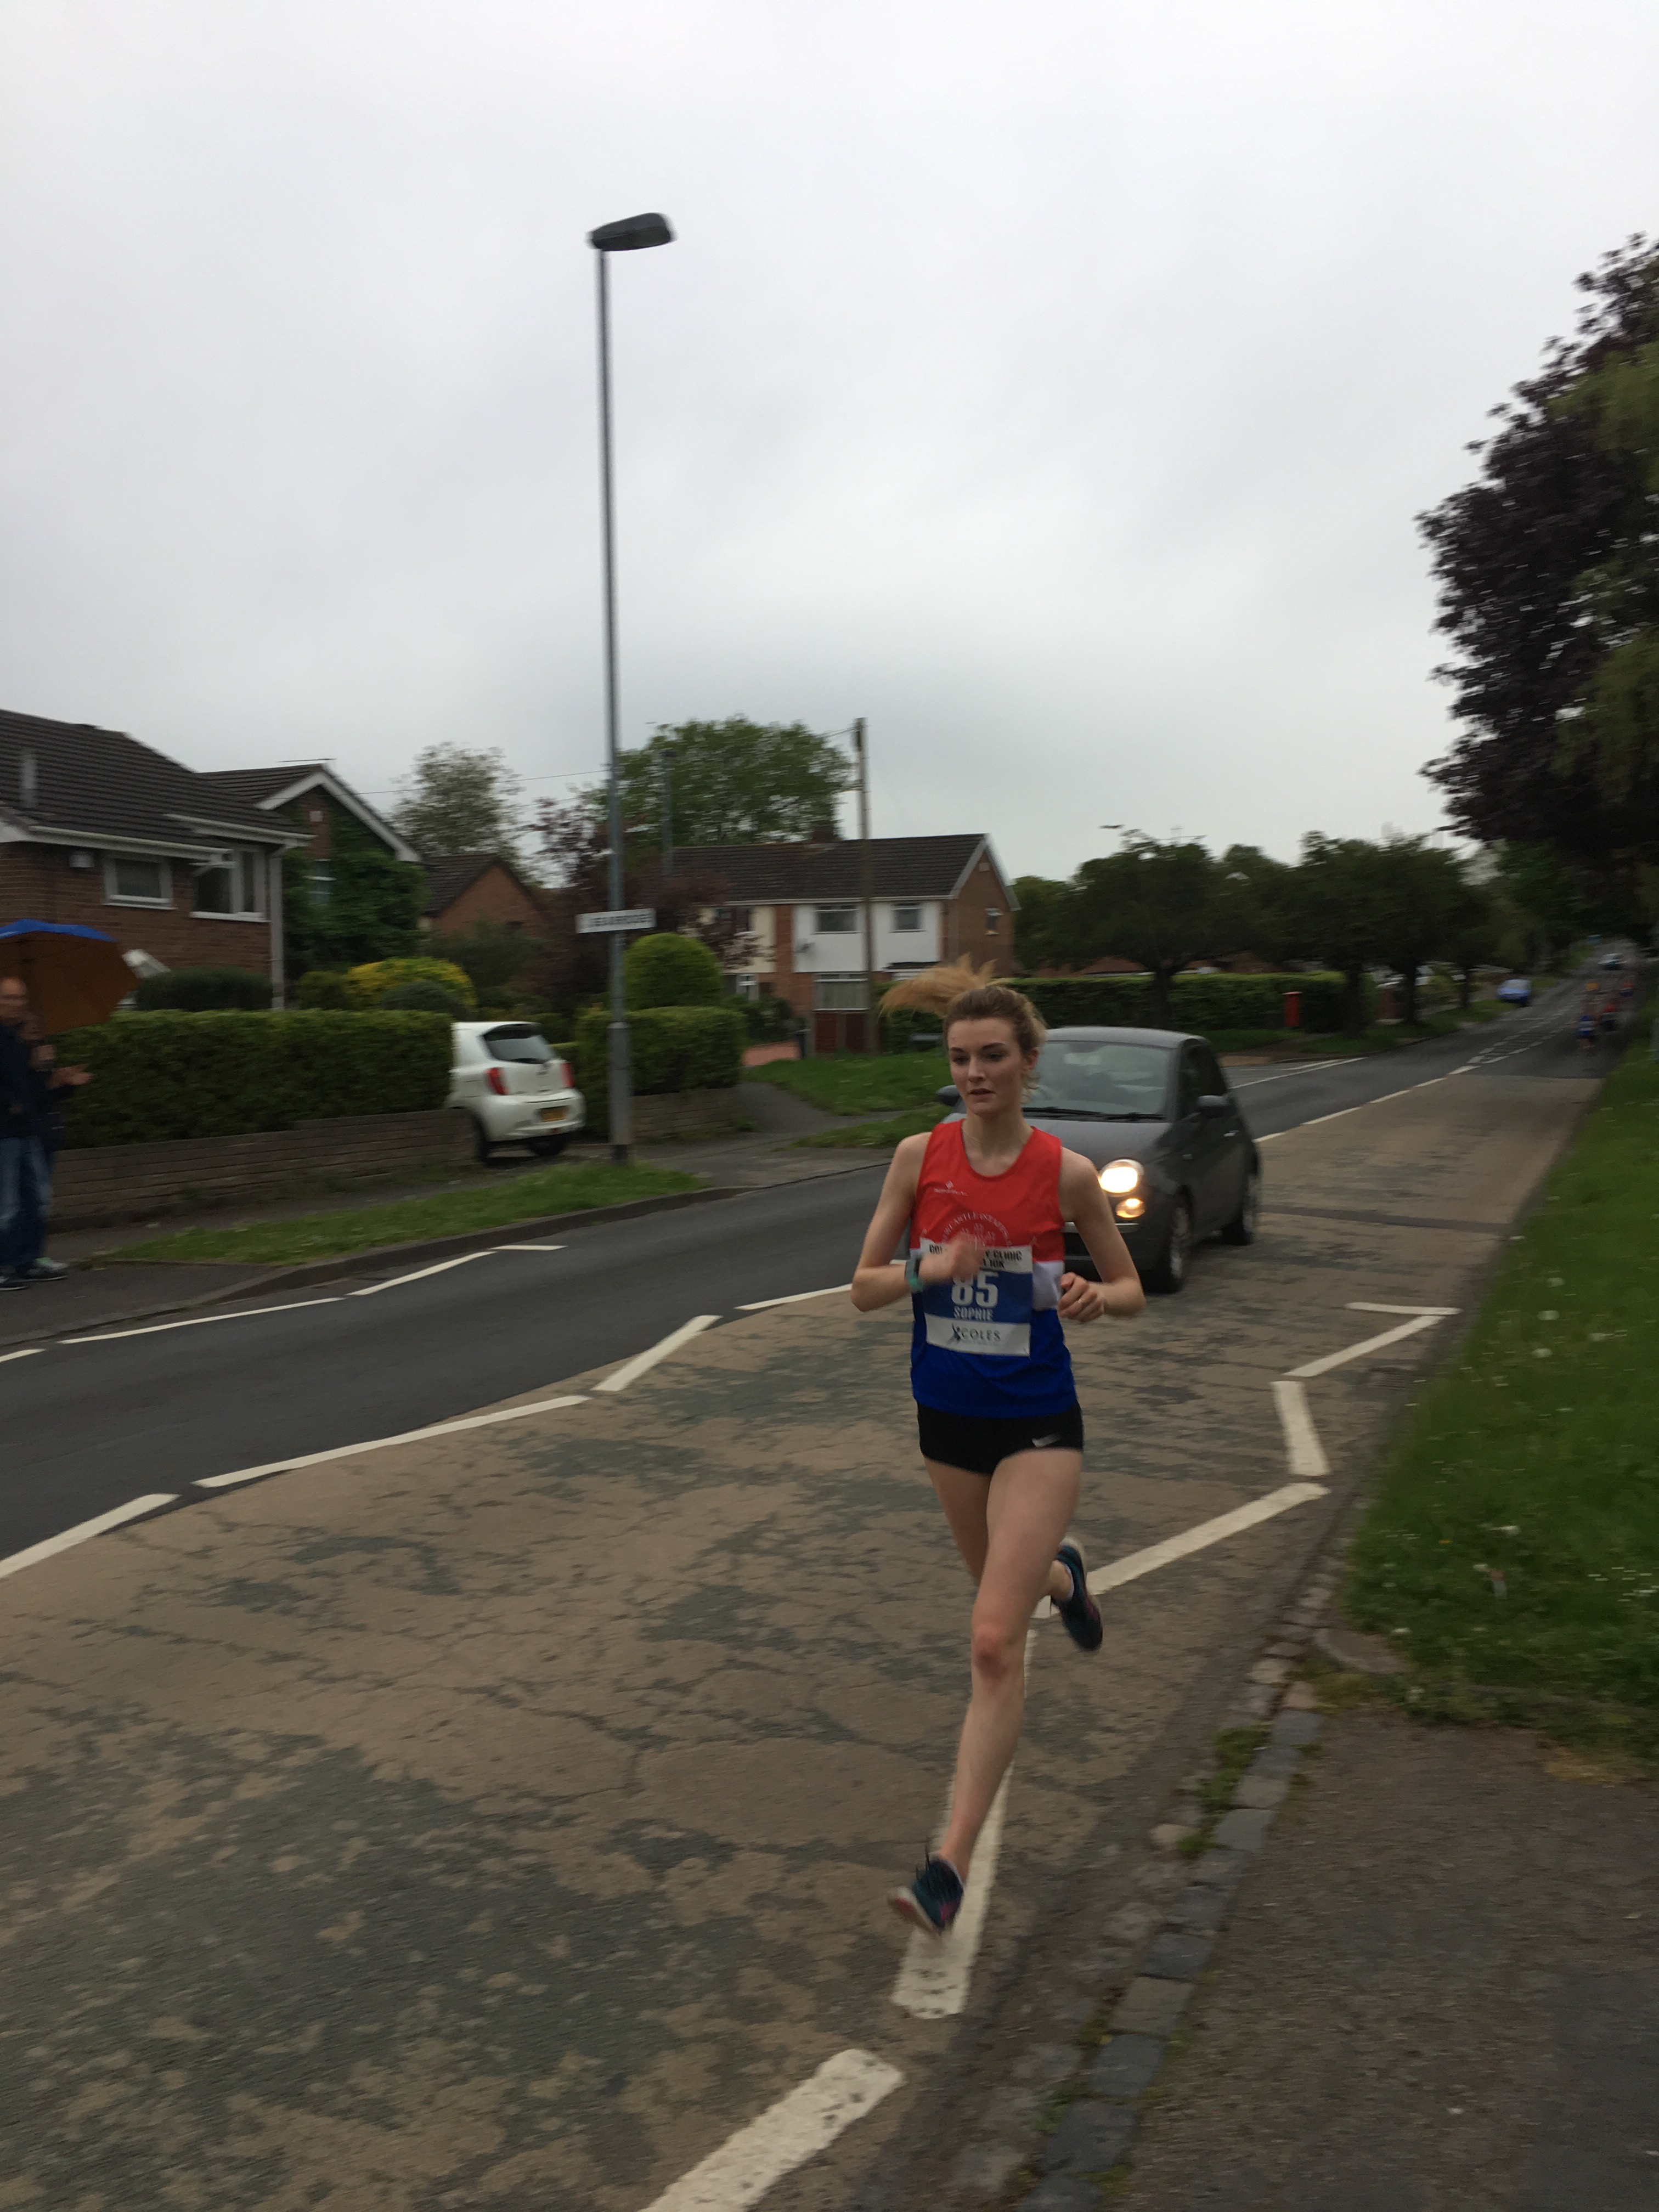 Staffordshire Championships at the Coles Clayton 10km – 9th May 2018